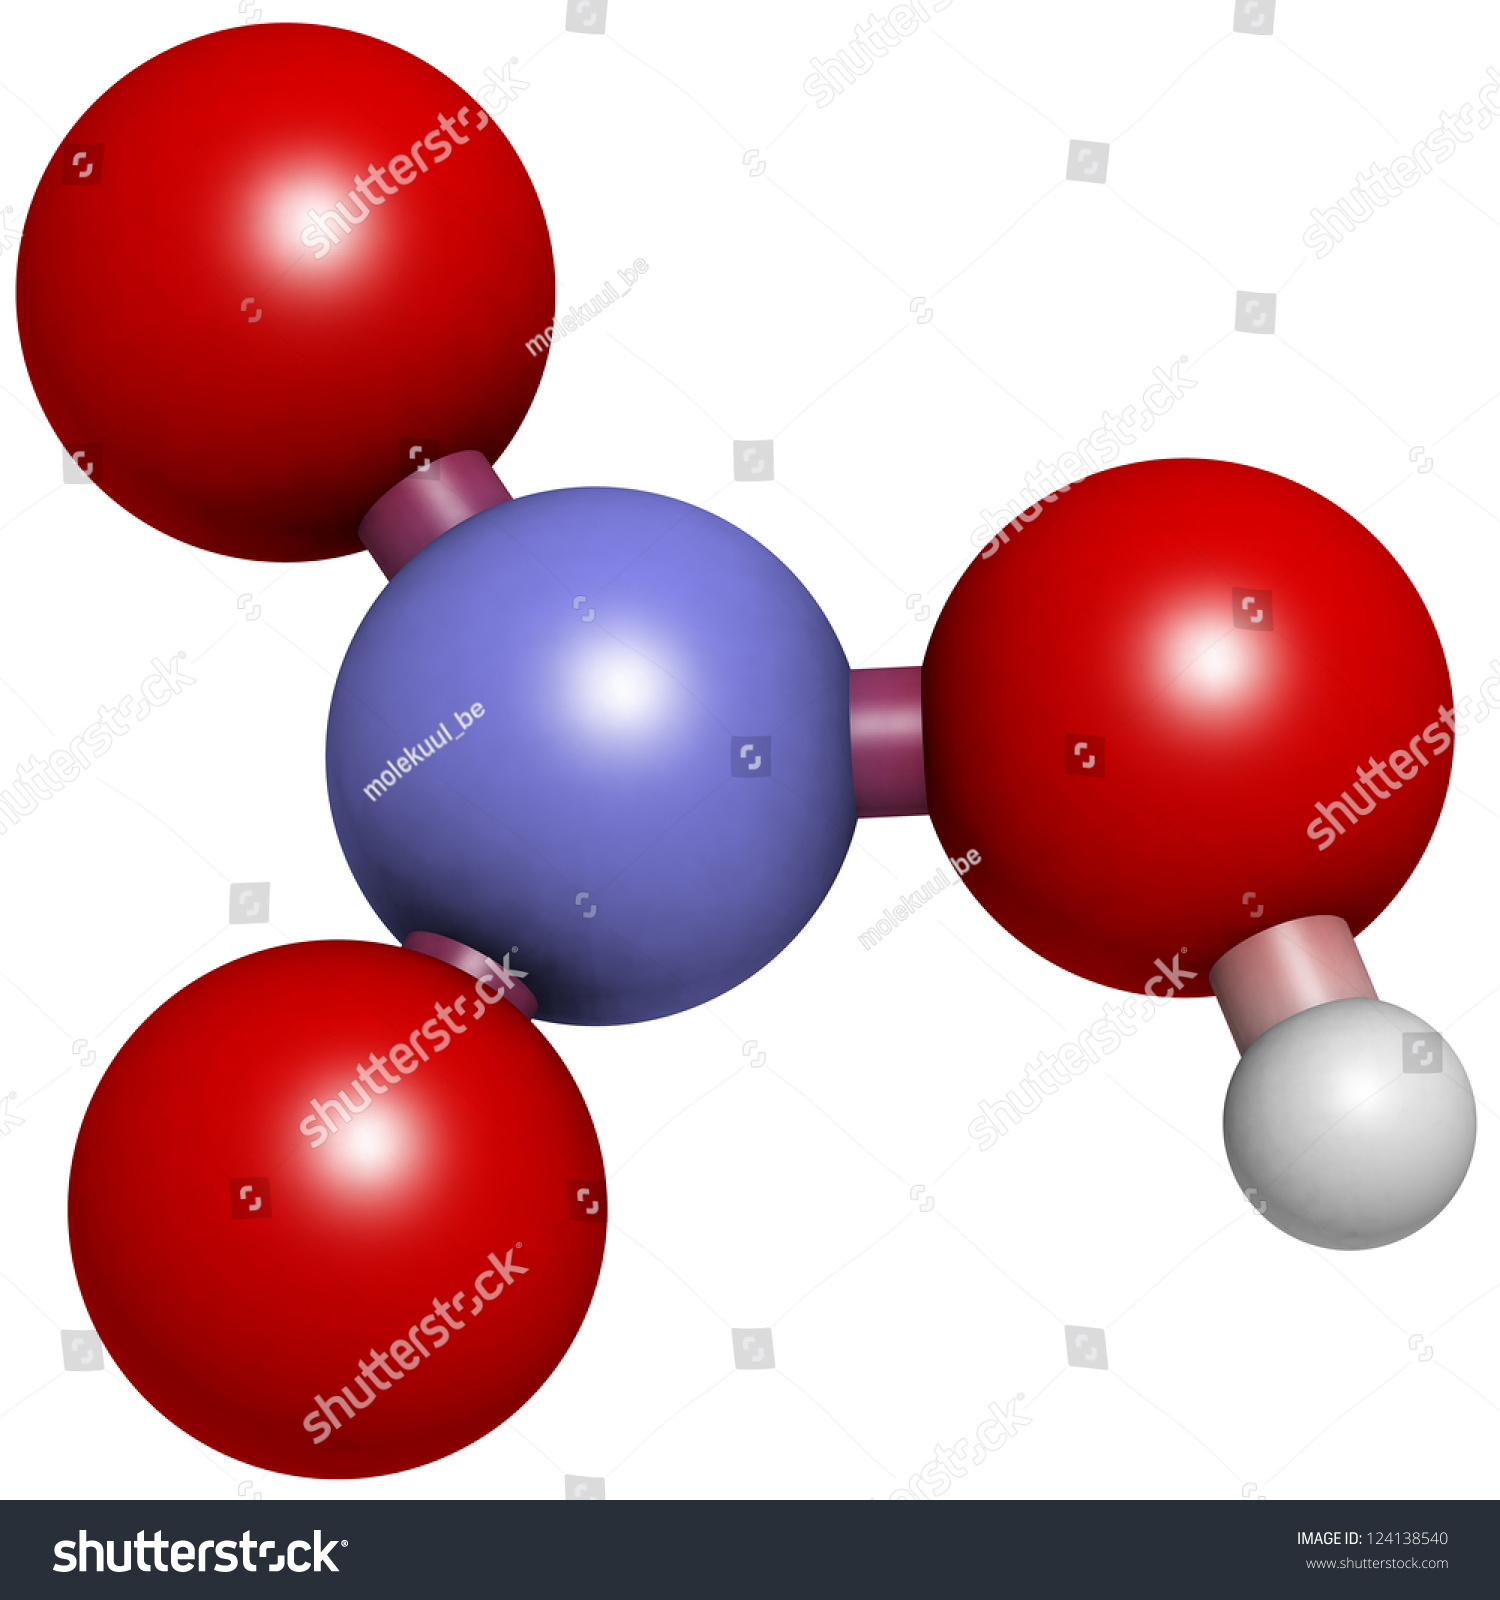 Nitric Acid Hno3 Molecule Chemical Structure Stock